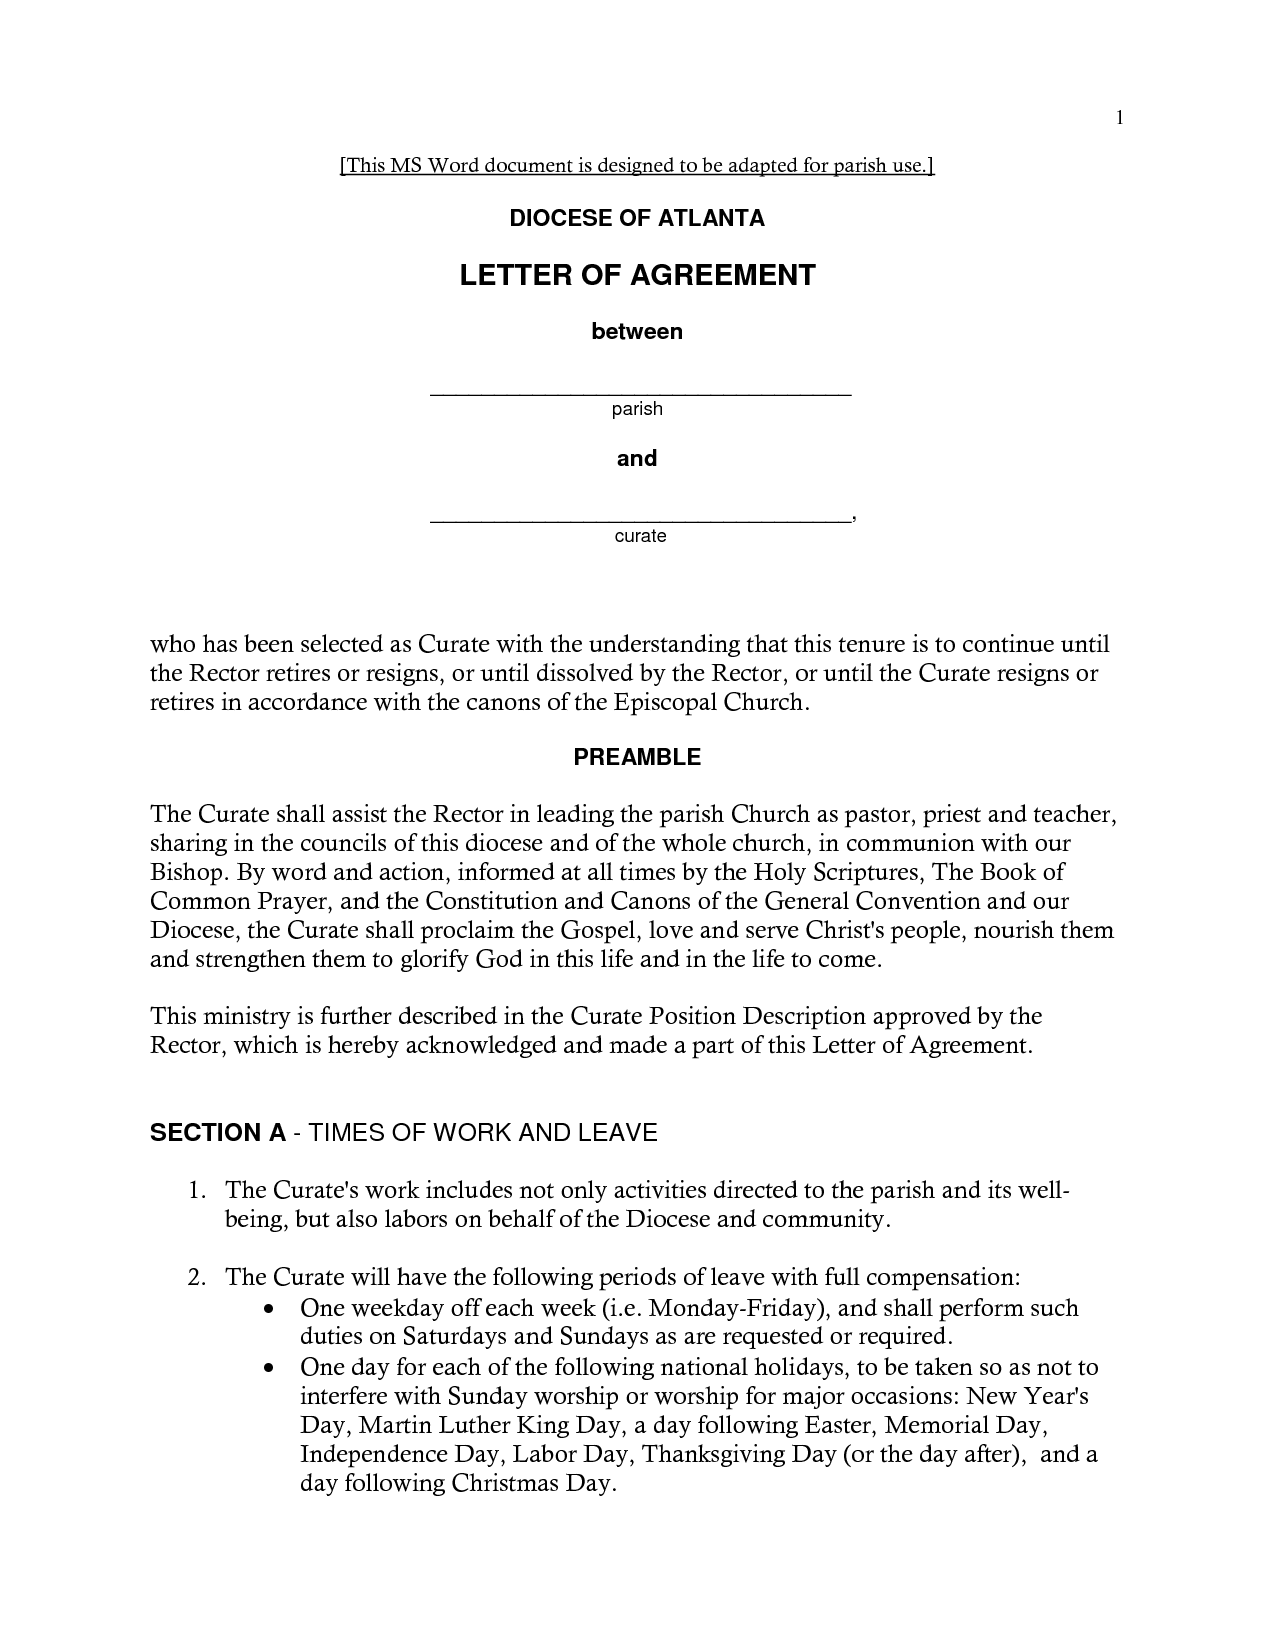 sample letter of loan agreement sample letter of agreement pbs agreement letter template